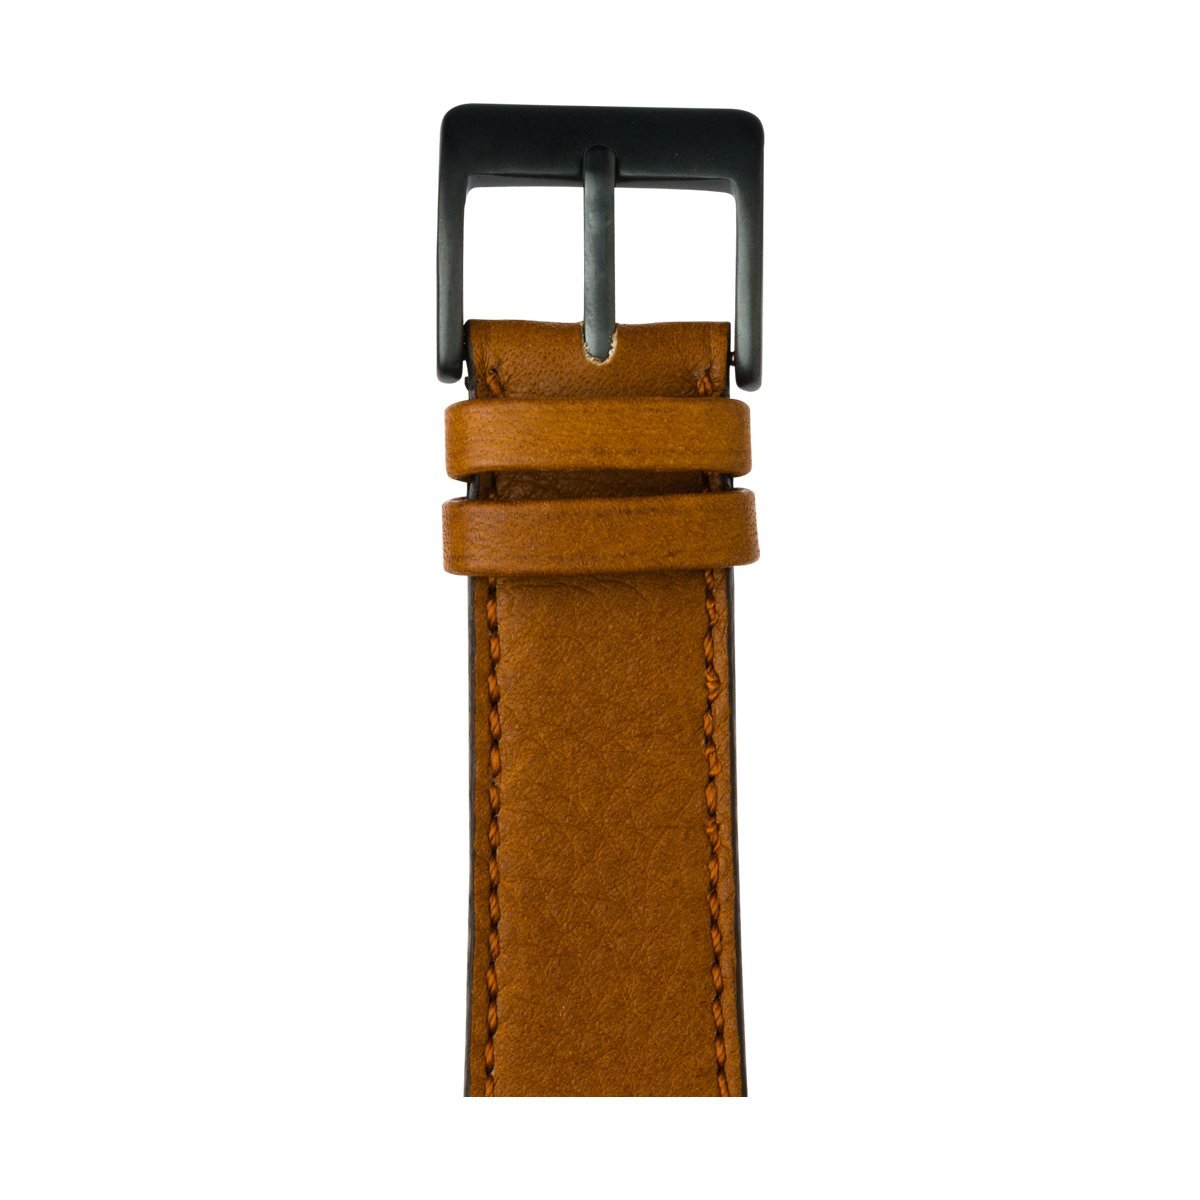 Roobaya | Premium Sauvage Leather Apple Watch Band in Cognac | Includes Adapters matching the Color of the Apple Watch, Case Color:Space Gray Aluminum, Size:38 mm